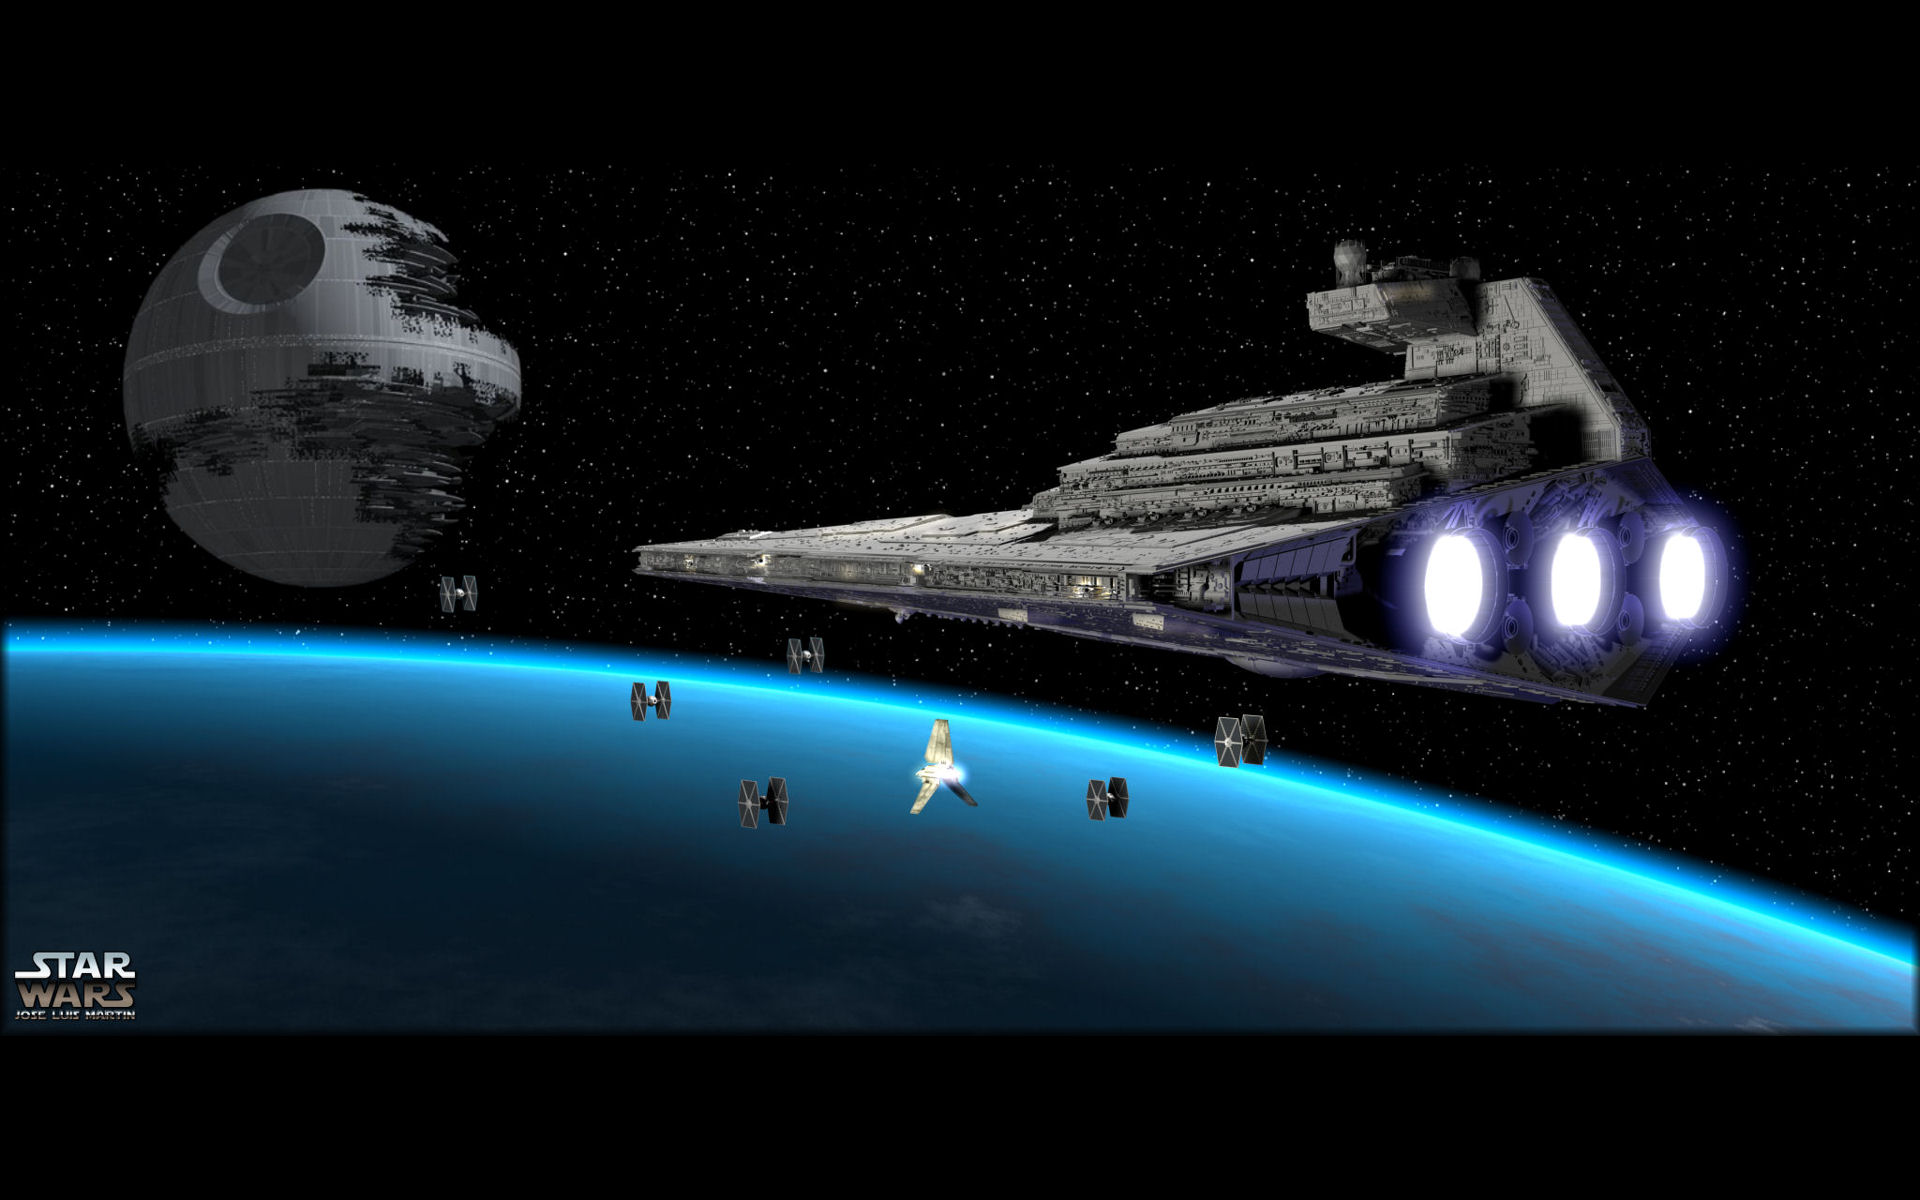 sci fi star wars death star star destroyer tie fighter wallpaper